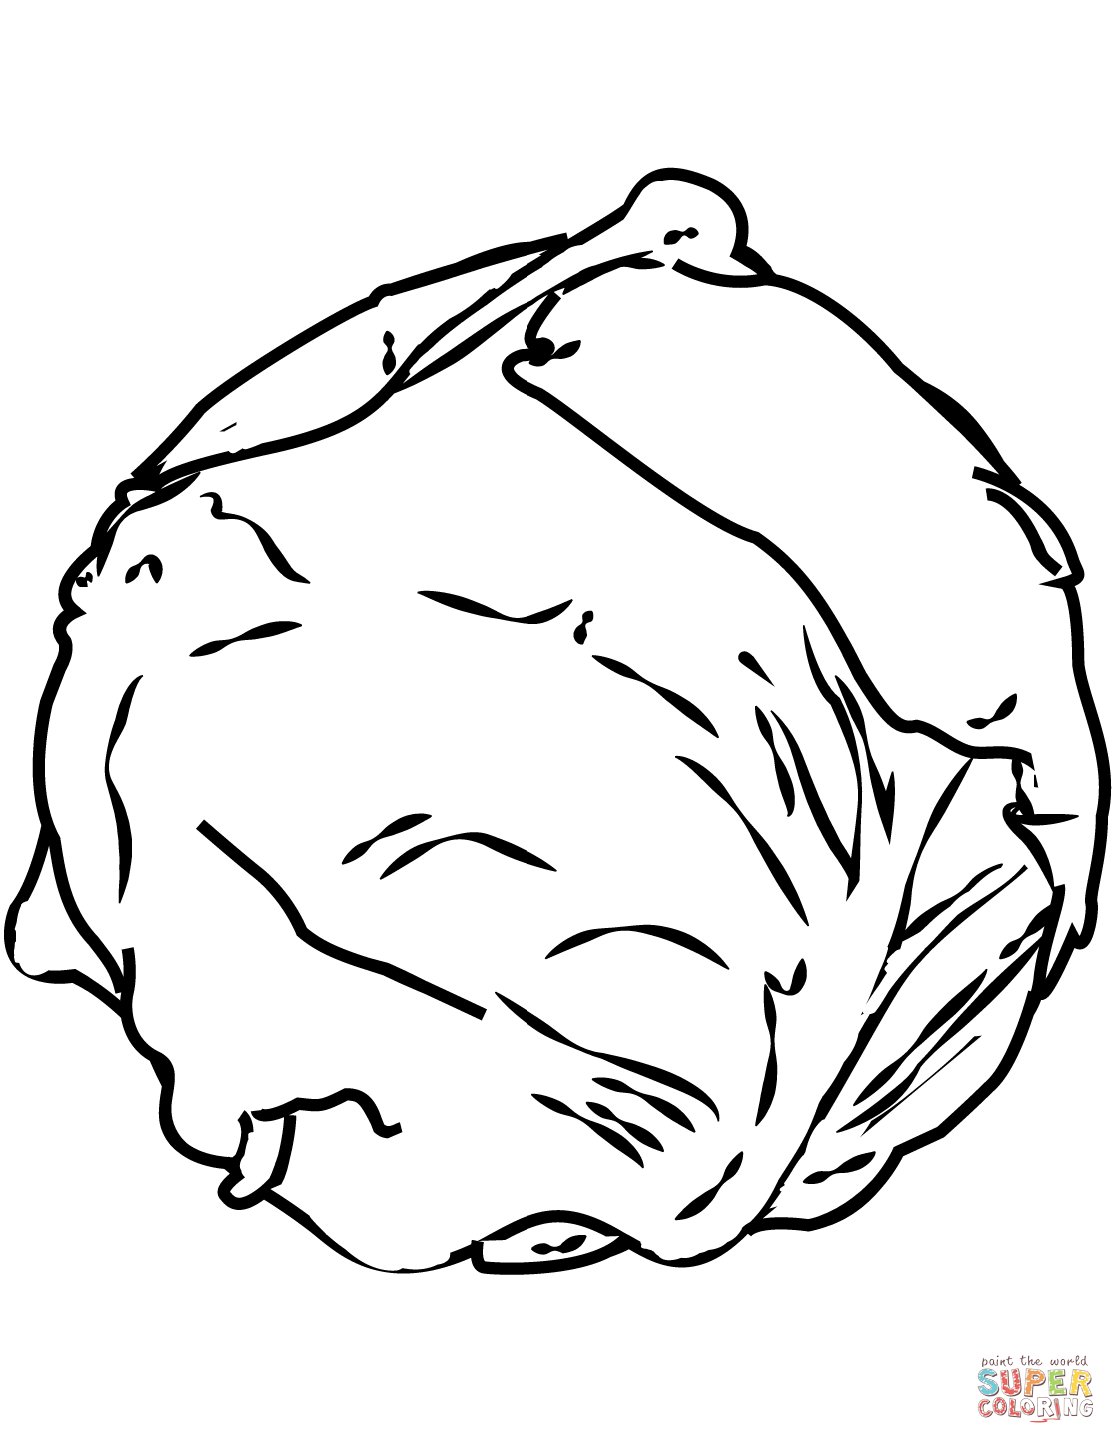 Cabbage Coloring Page Free Printable Coloring Pages